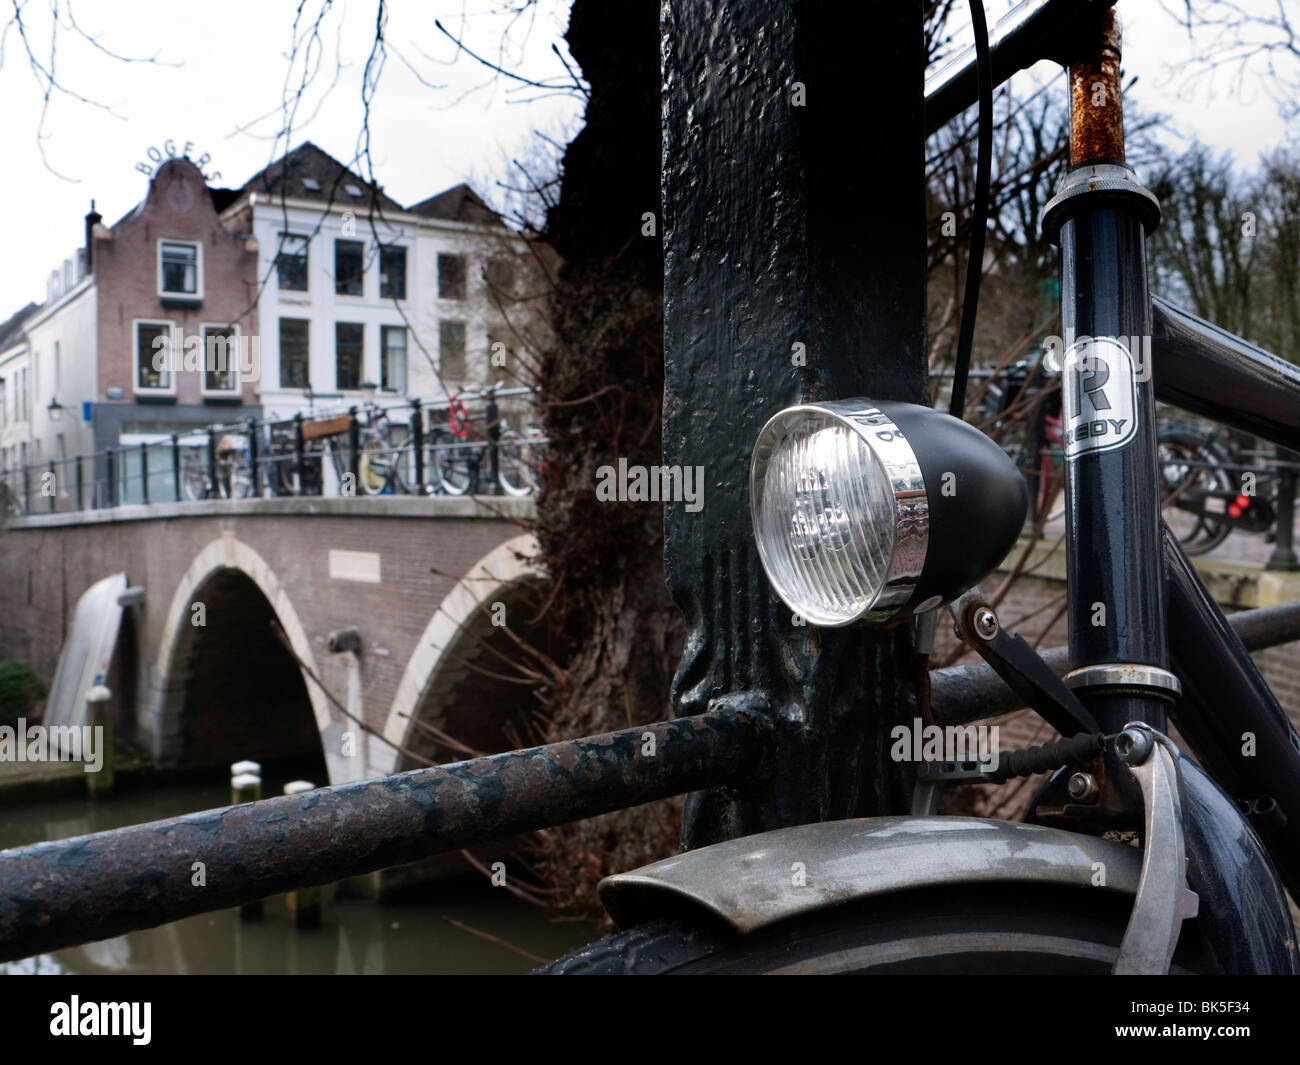 Detail of parked bicycle on street beside Oude Gracht or Old Canal in Utrecht The Netherlands - Stock Image